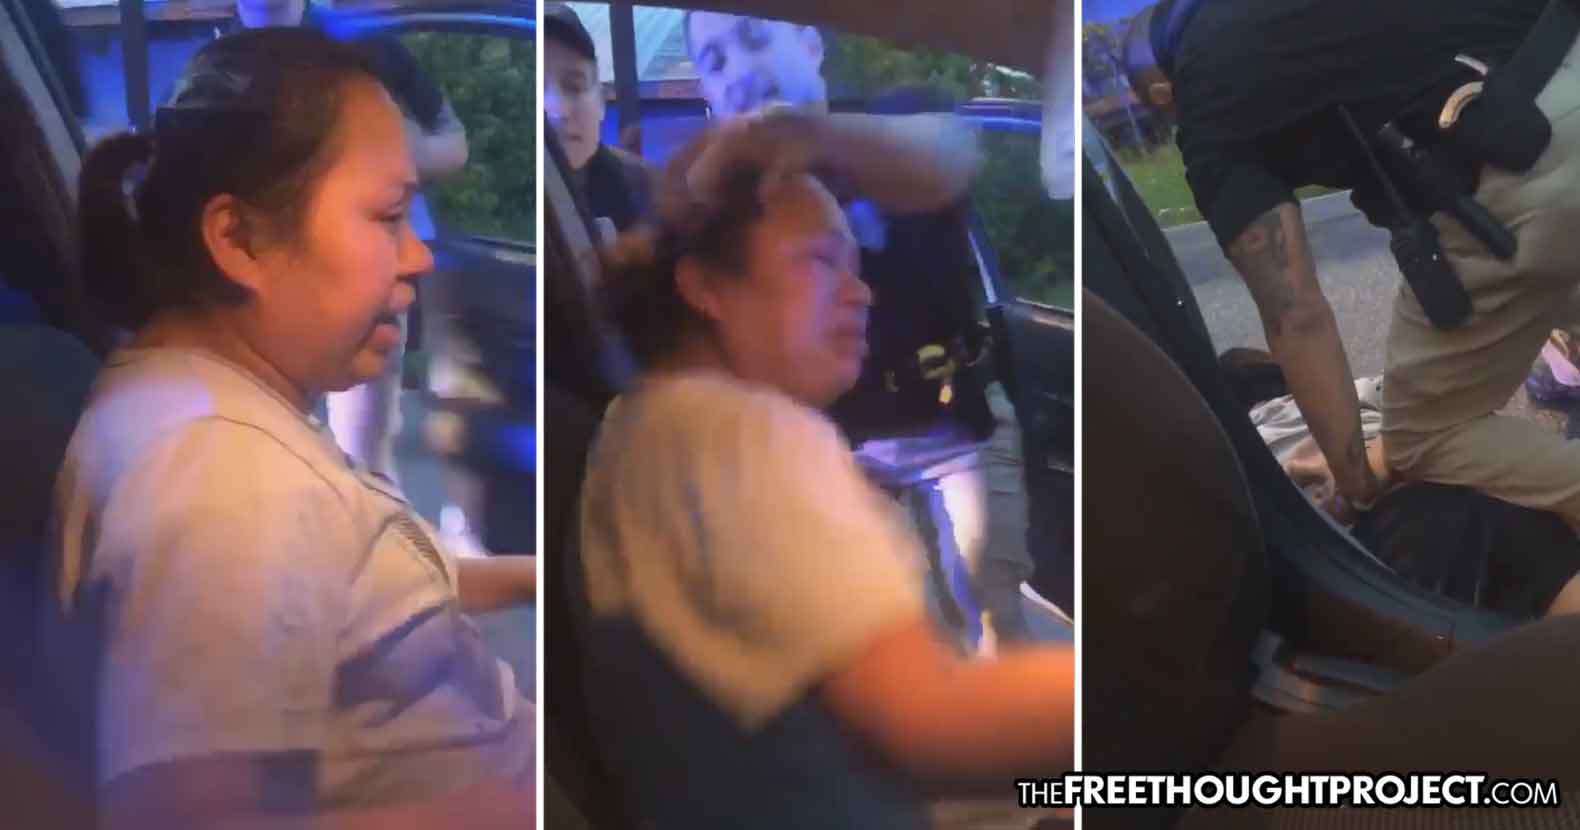 WATCH: Cop Grabs Mother By Her Hair, Rips Her from Car as